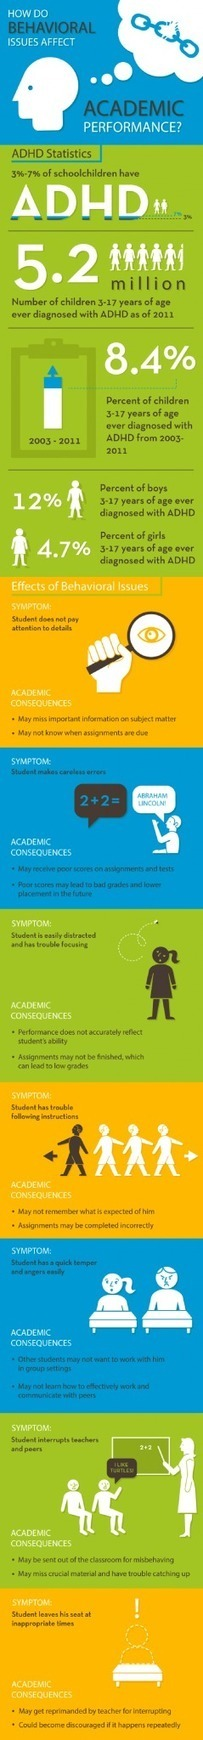 How Behavioral Issues Affect Academic Performance Infographic | Leadership, Innovation, and Creativity | Scoop.it